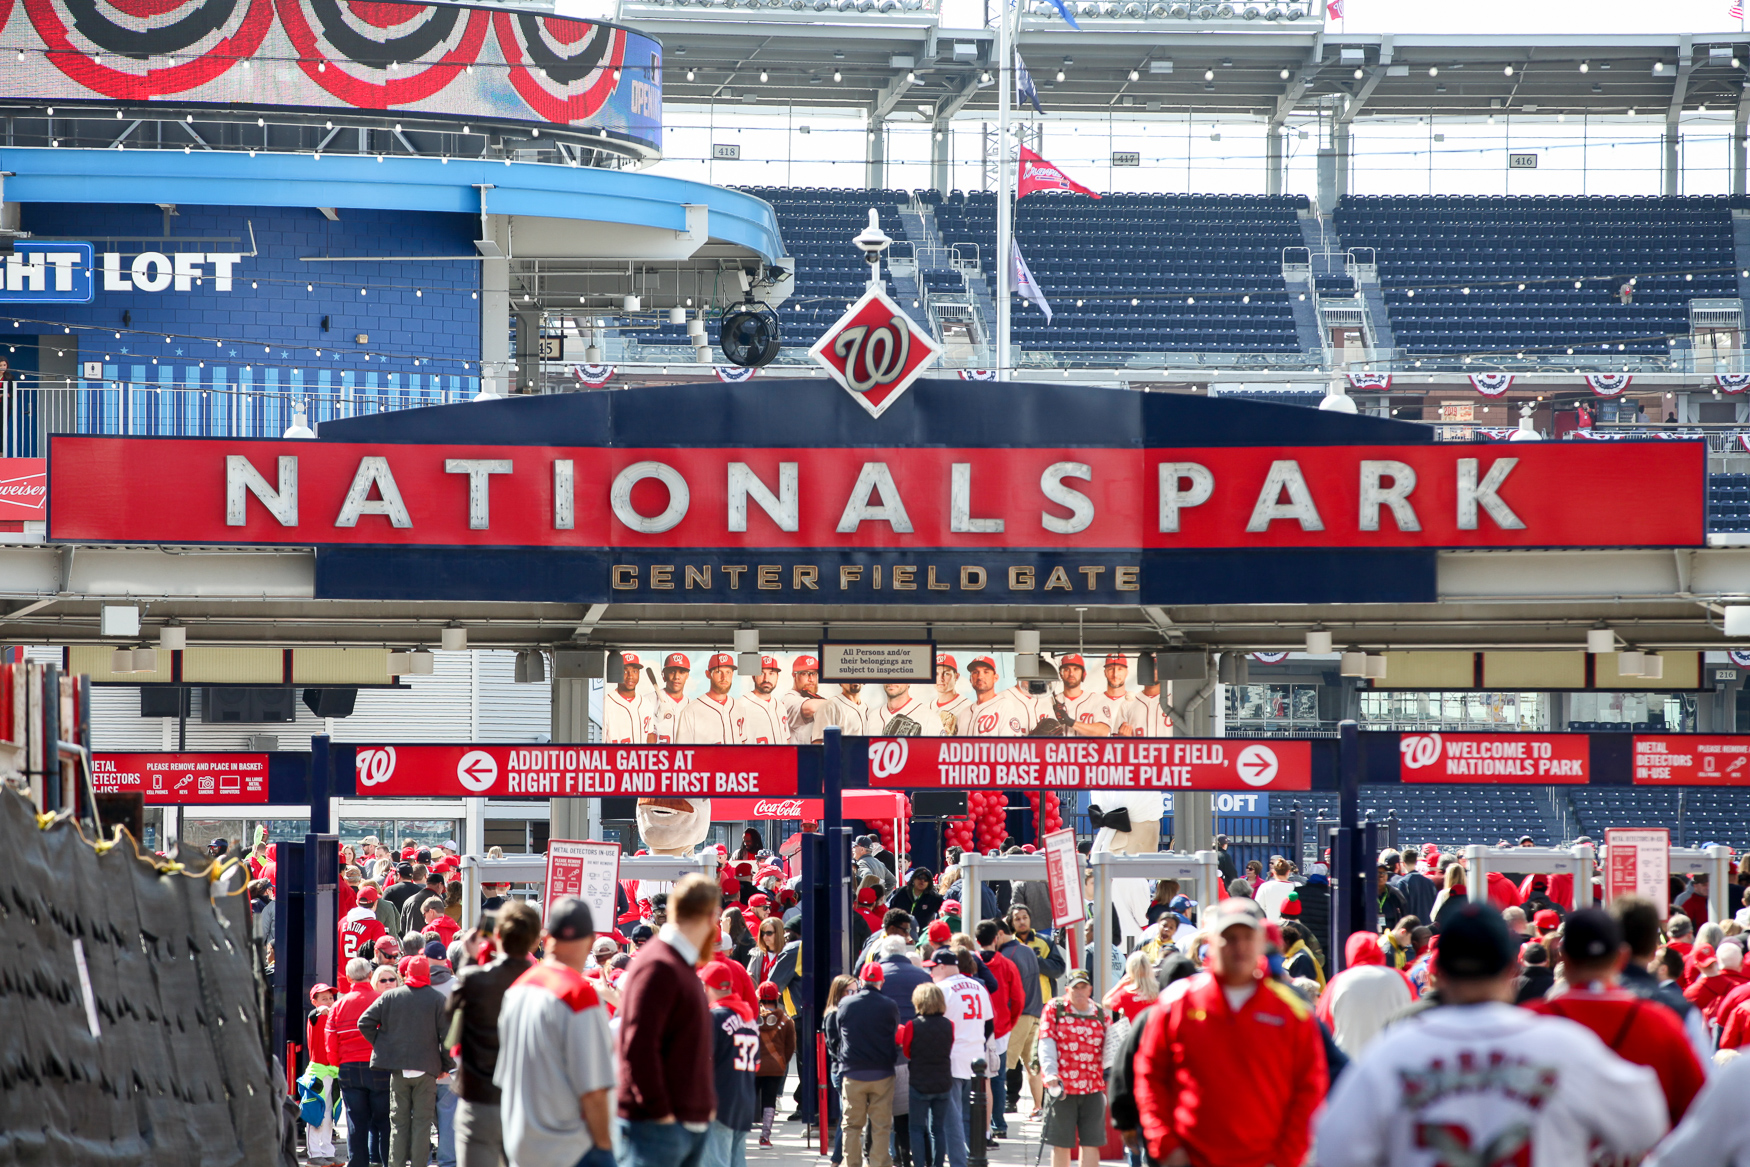 Baseball is officially back, baby! After an opening day loss, the Nats are ready to redeem themselves against the Mets for the first Saturday game of the season, with Strasburg on the mound. (Image: Amanda Andrade-Rhoades/ DC Refined)